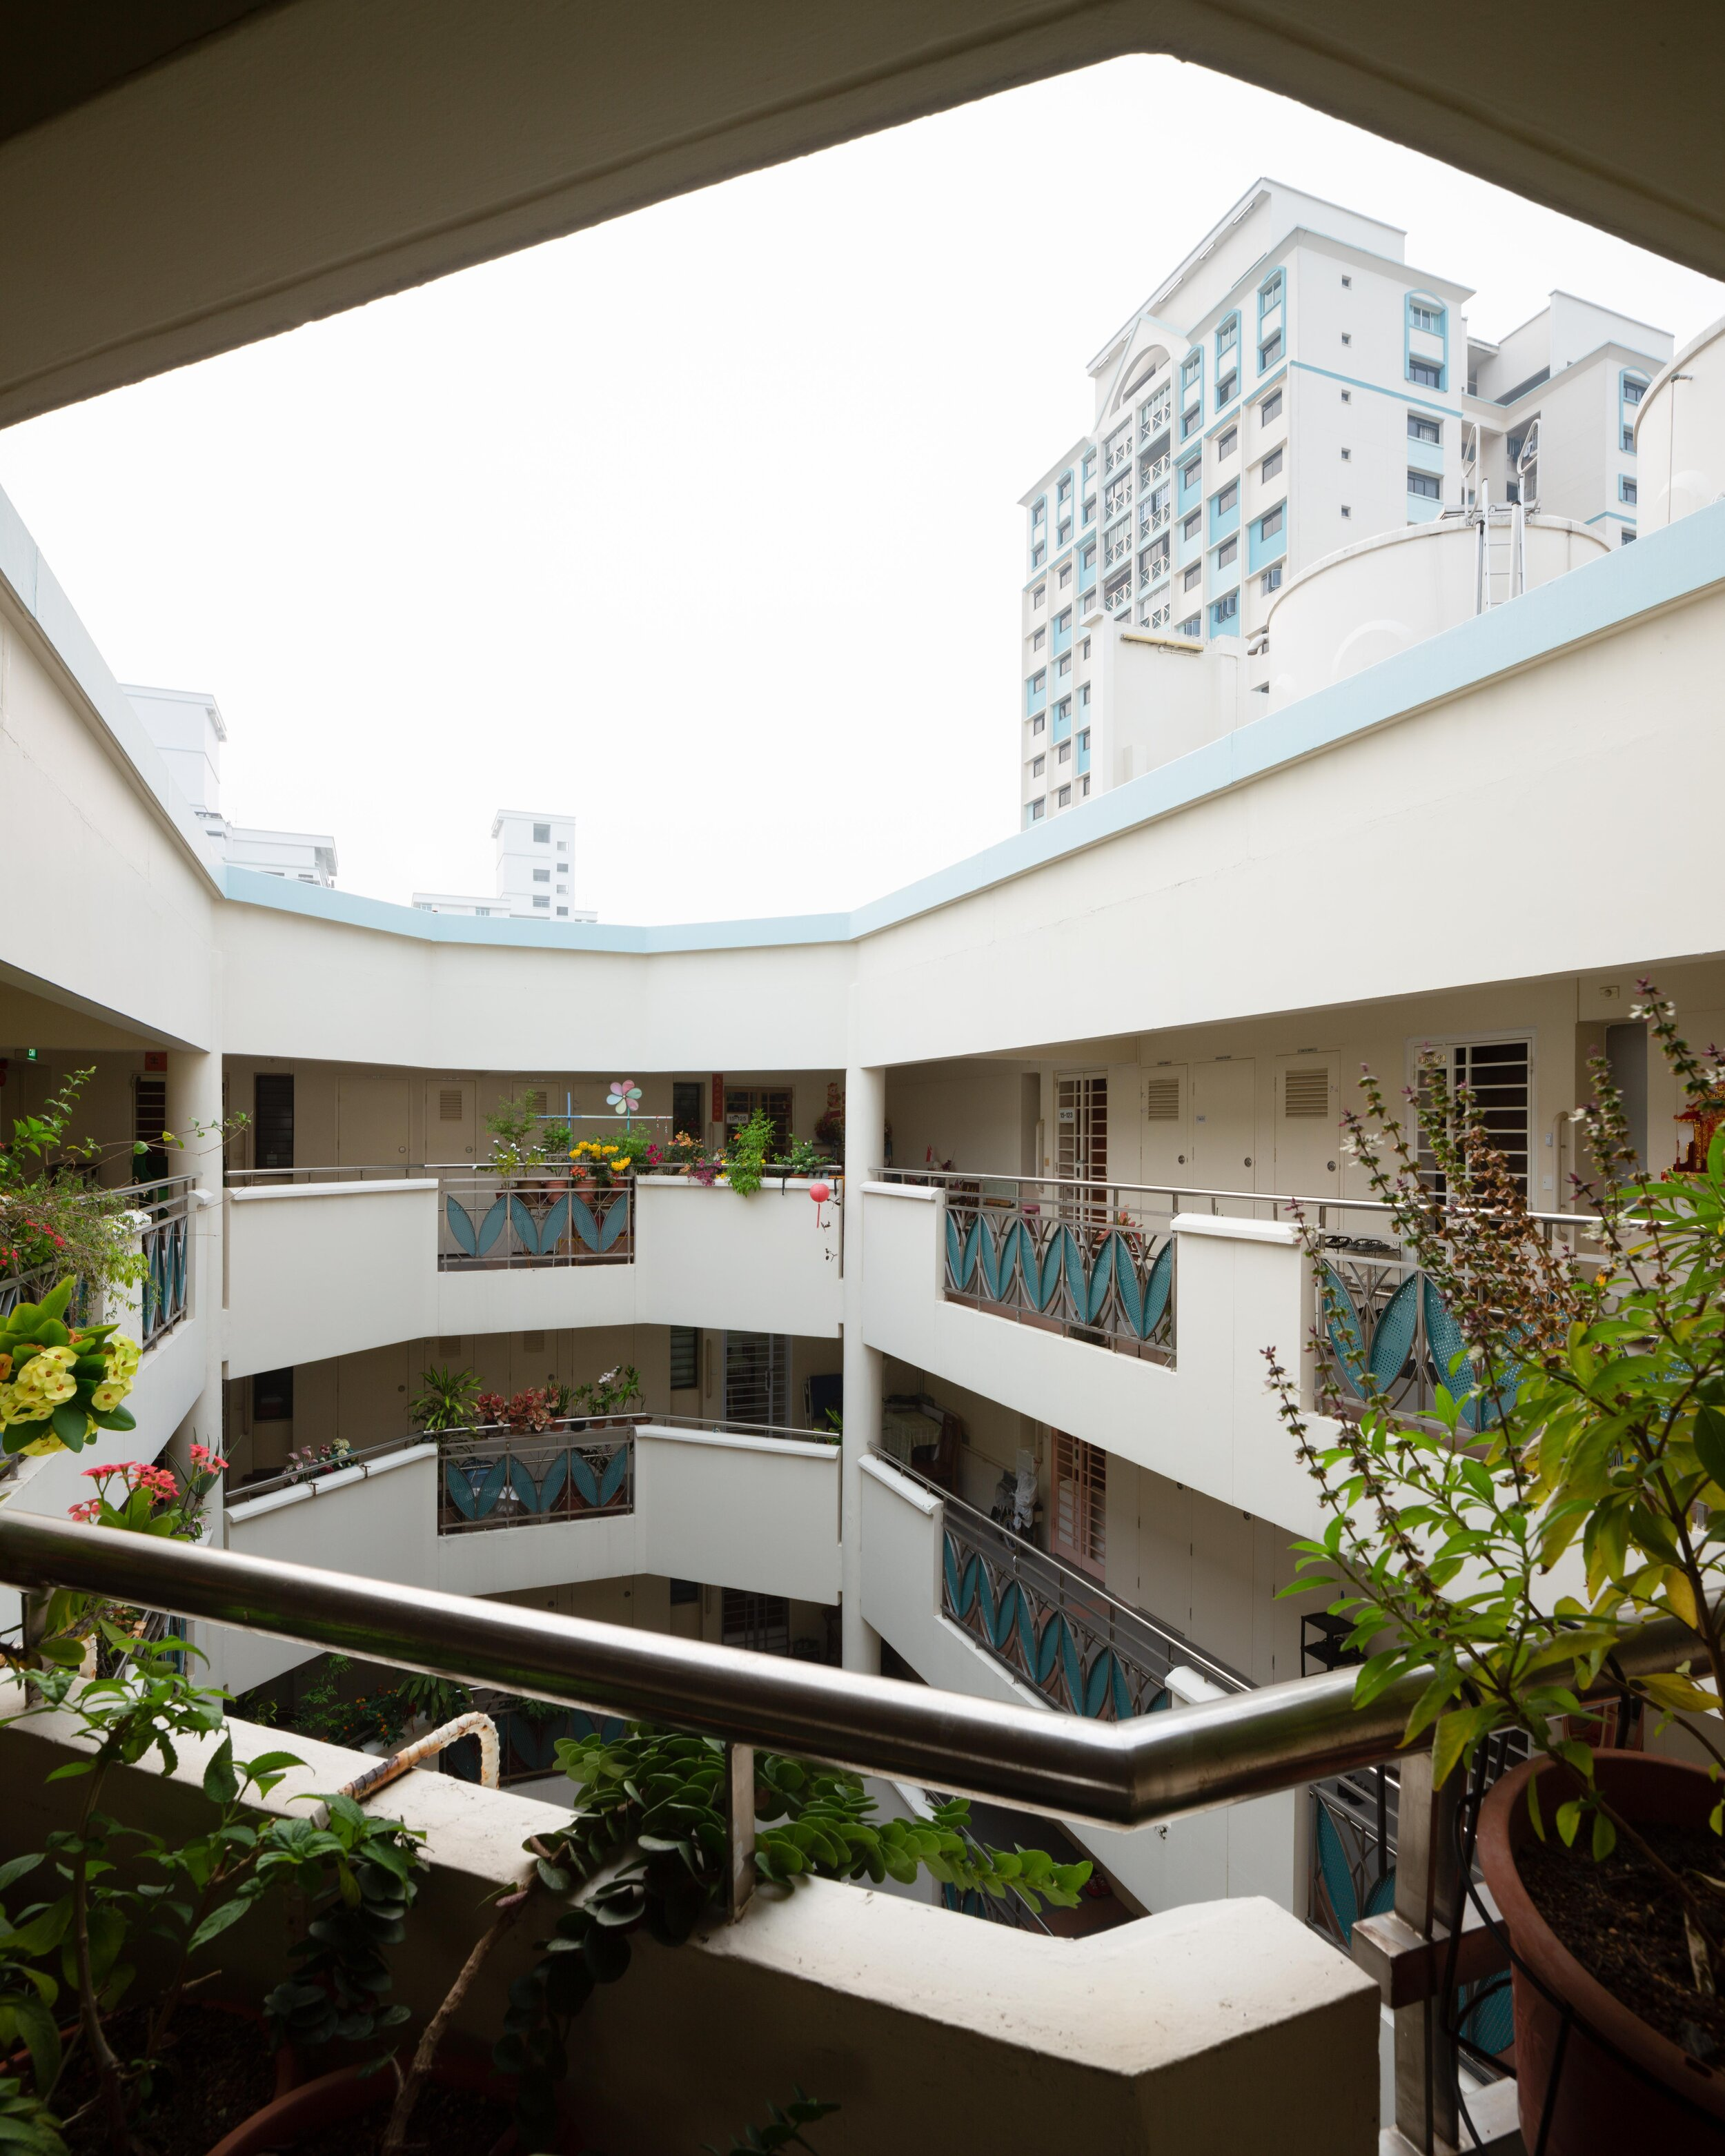 62B Lorong 4 Toa Payoh 190918 080, image by Andrew Campbell Nelson.jpg